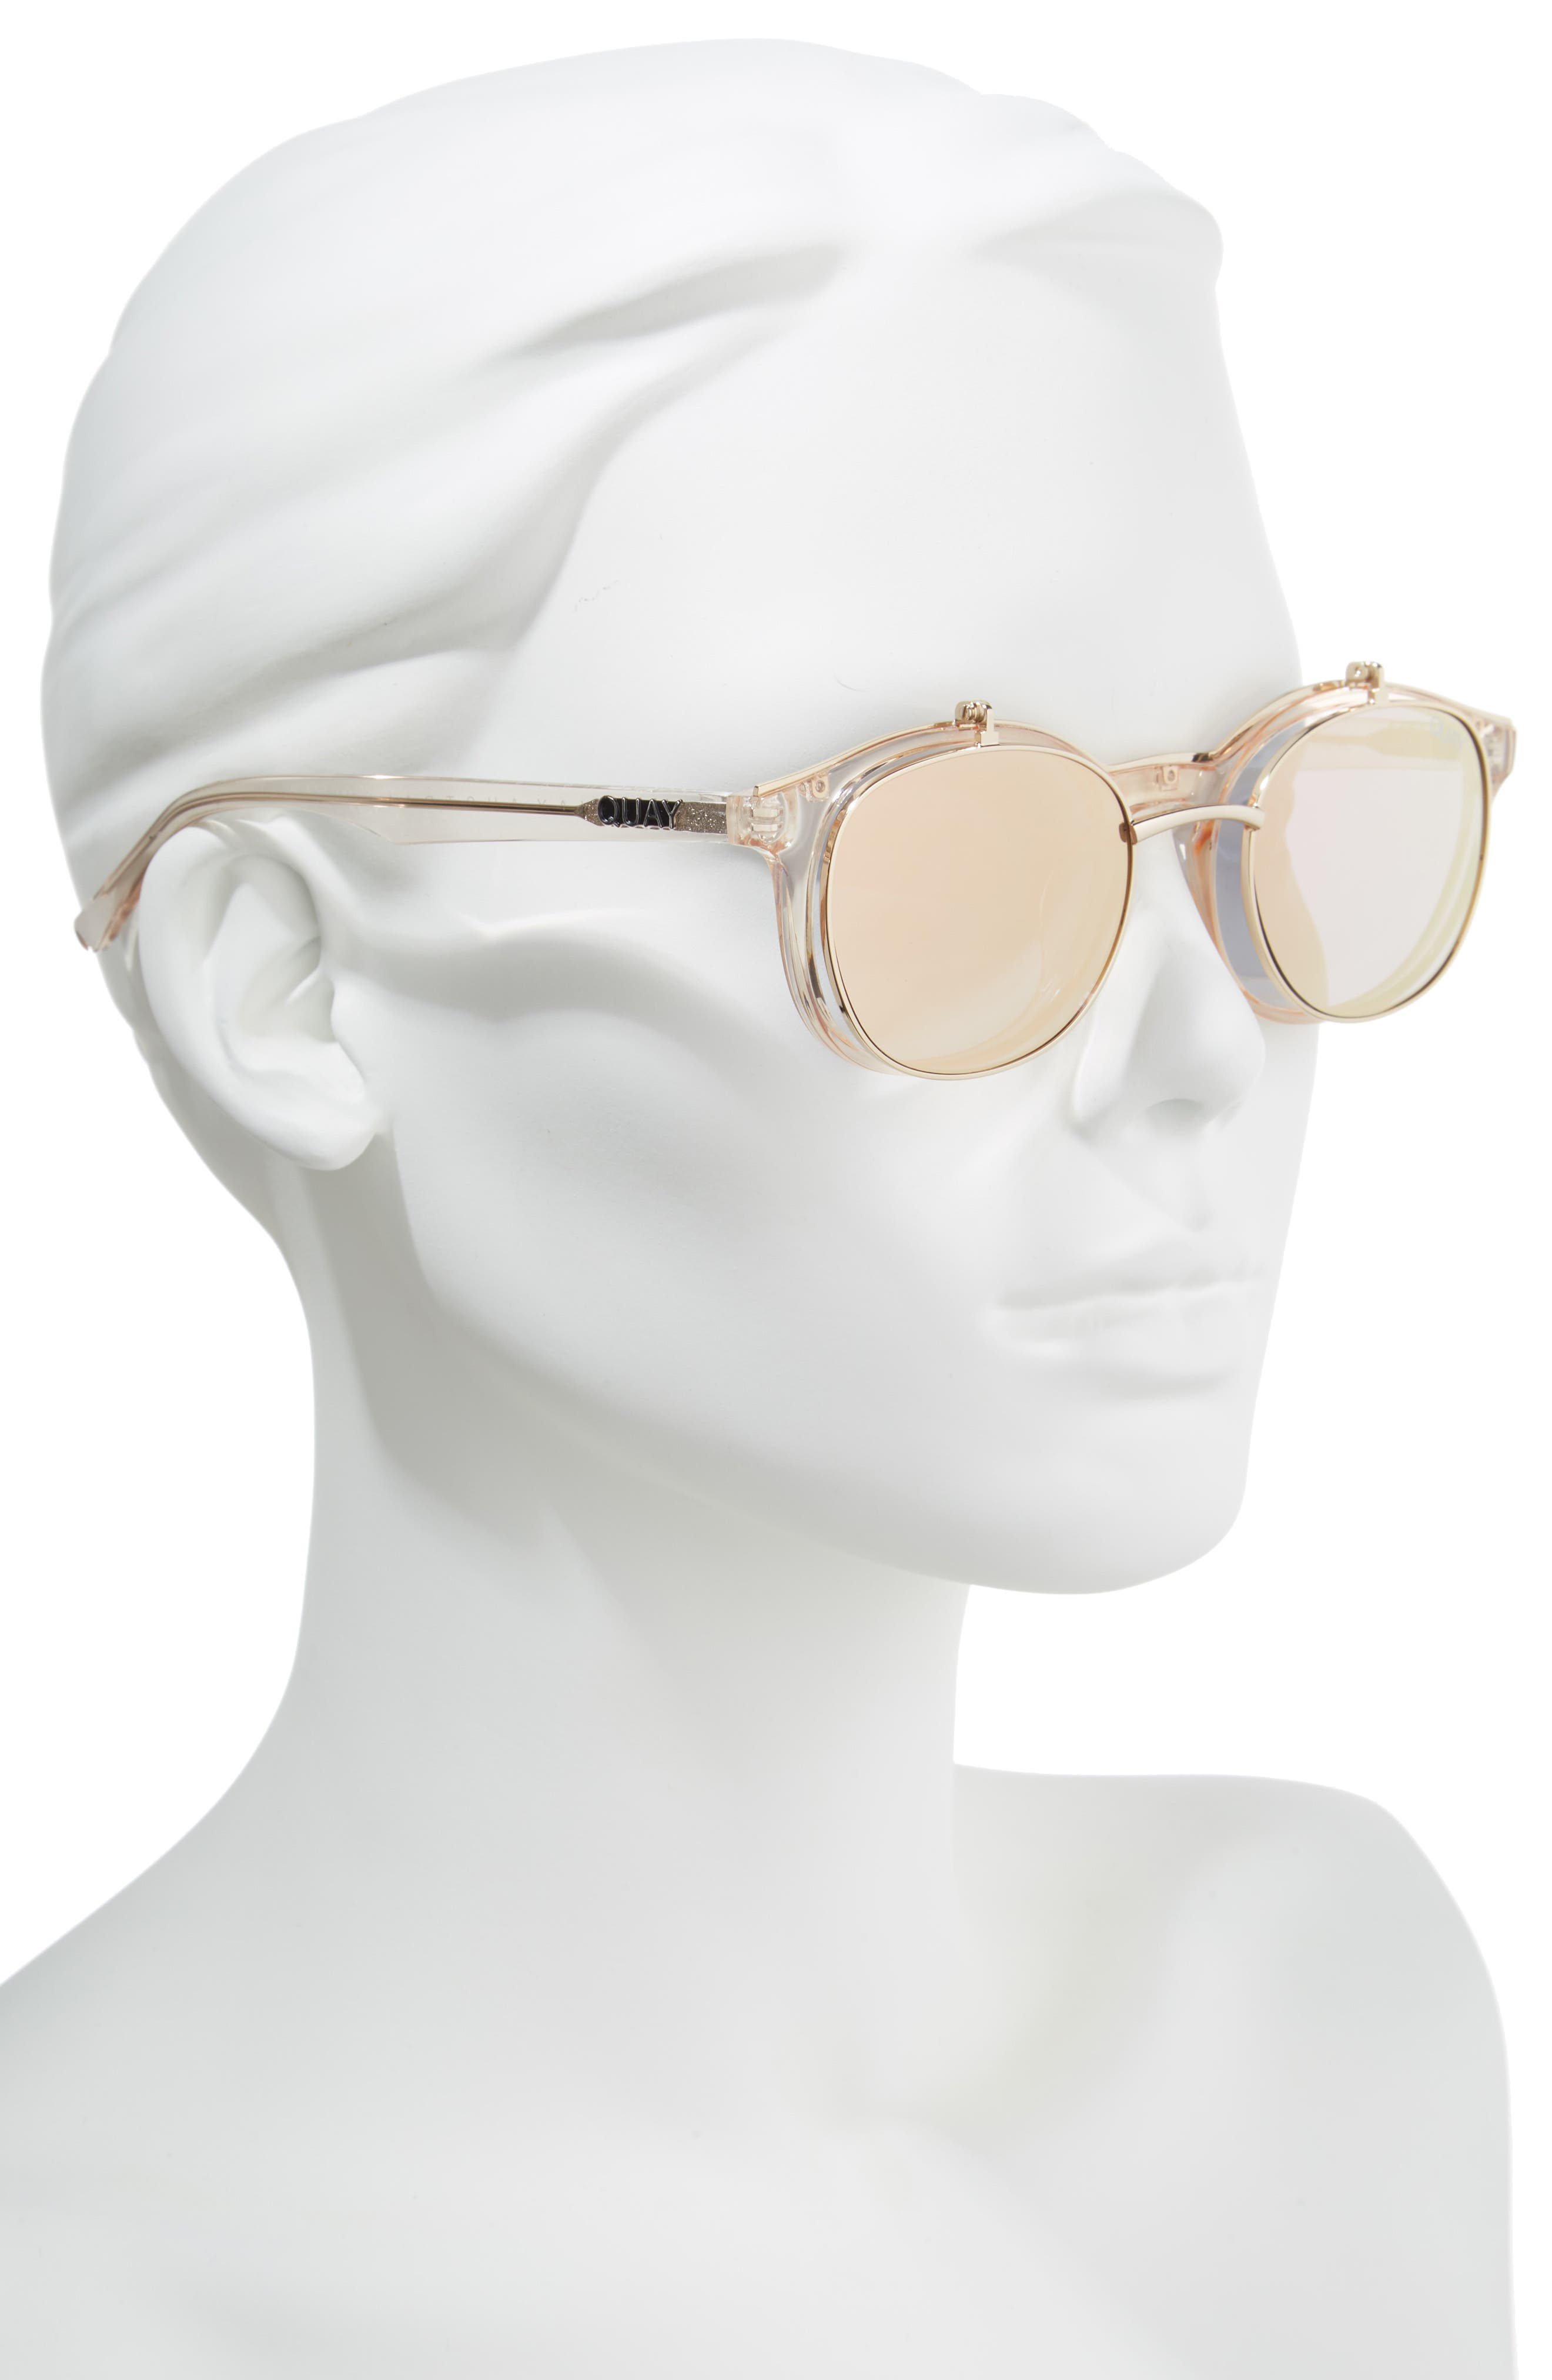 Penny Royal 55mm Flip-Up Round Sunglasses,                             Alternate thumbnail 2, color,                             Champagne/ Gold